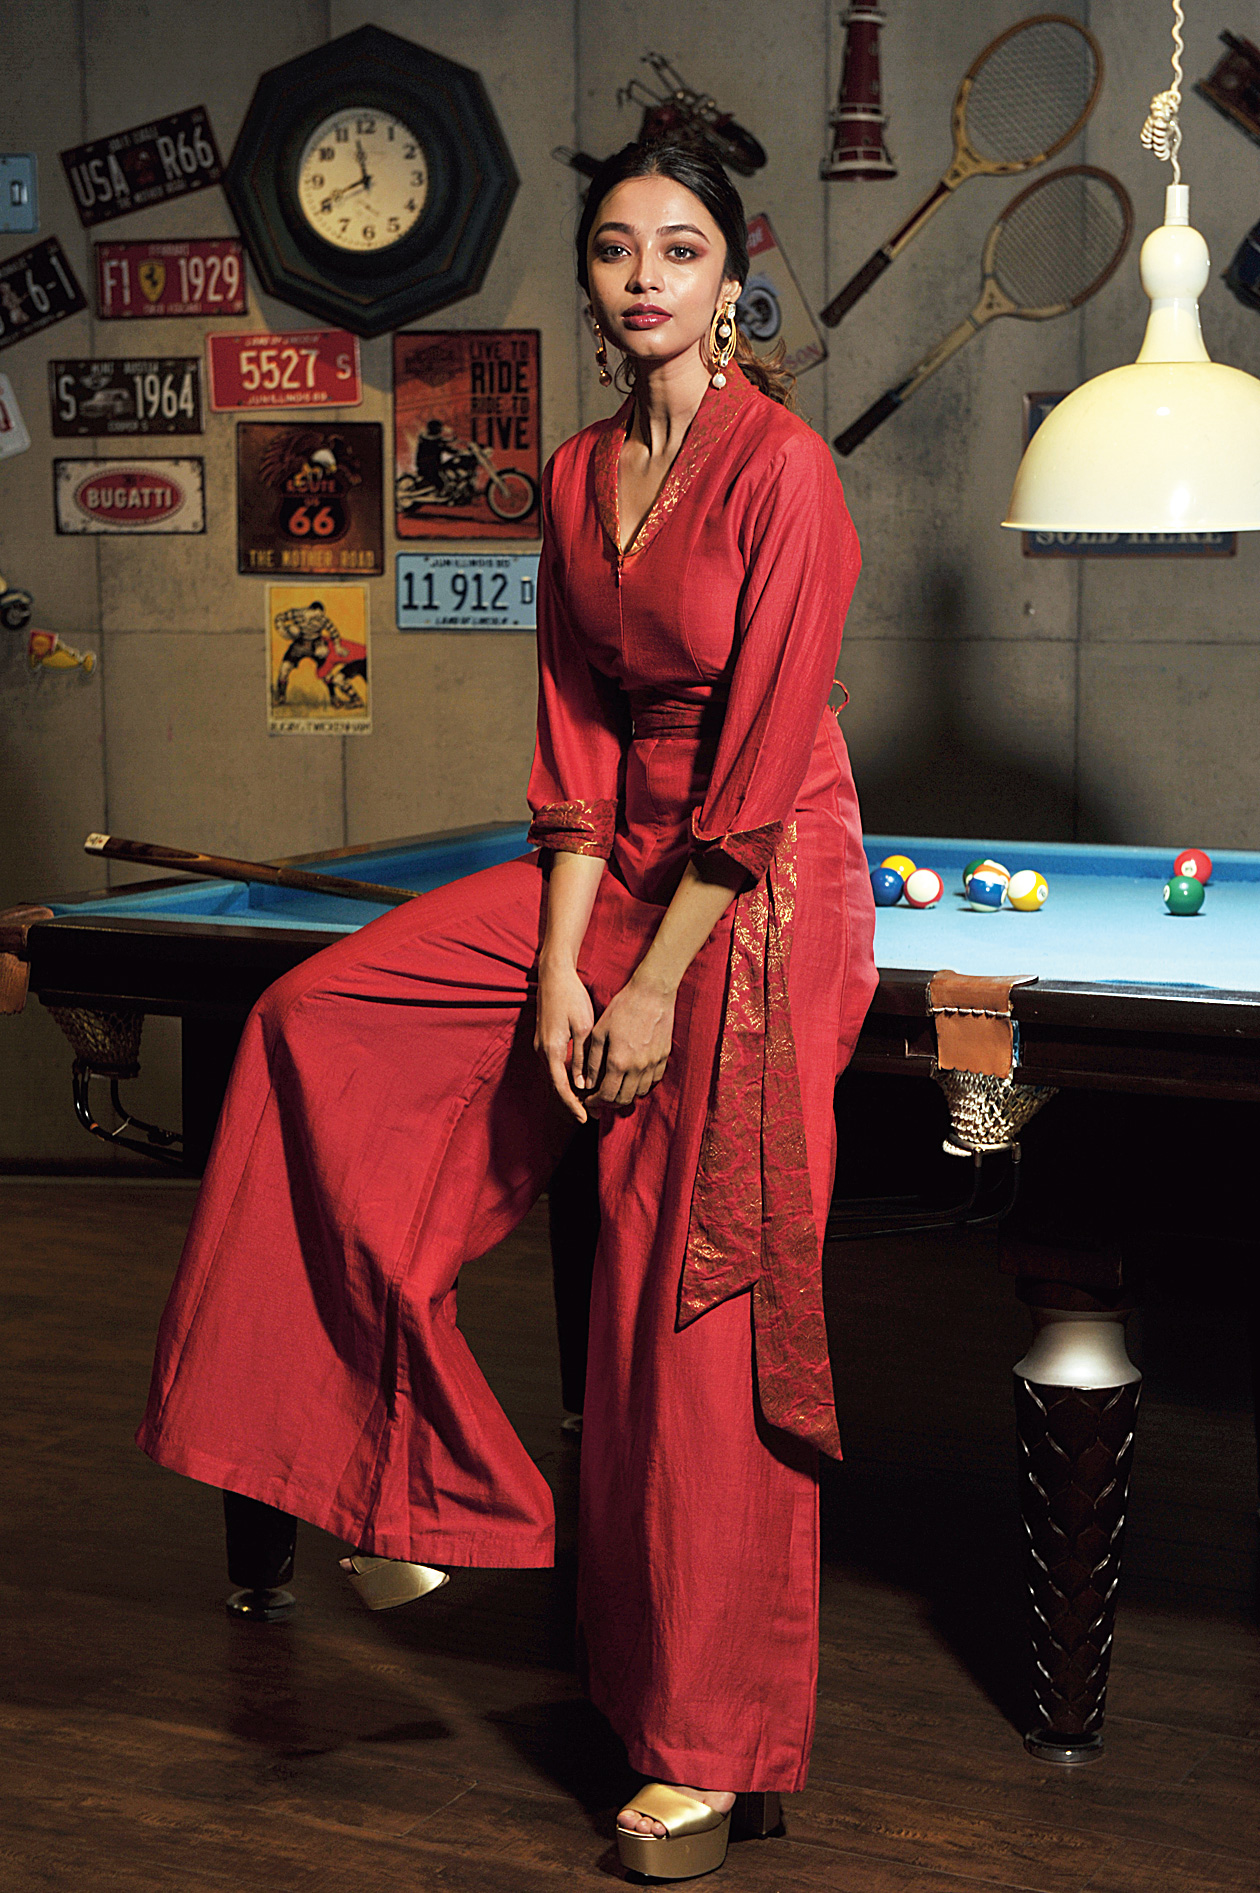 Rocking in red: Diwali night will most probably see you hitting a party pad to wrap up the revelry. Your outfit could easily be this red muga silk jumpsuit with brocade detailing on the belt, collar and sleeves. A trendy yet elegant look with a touch of tradition